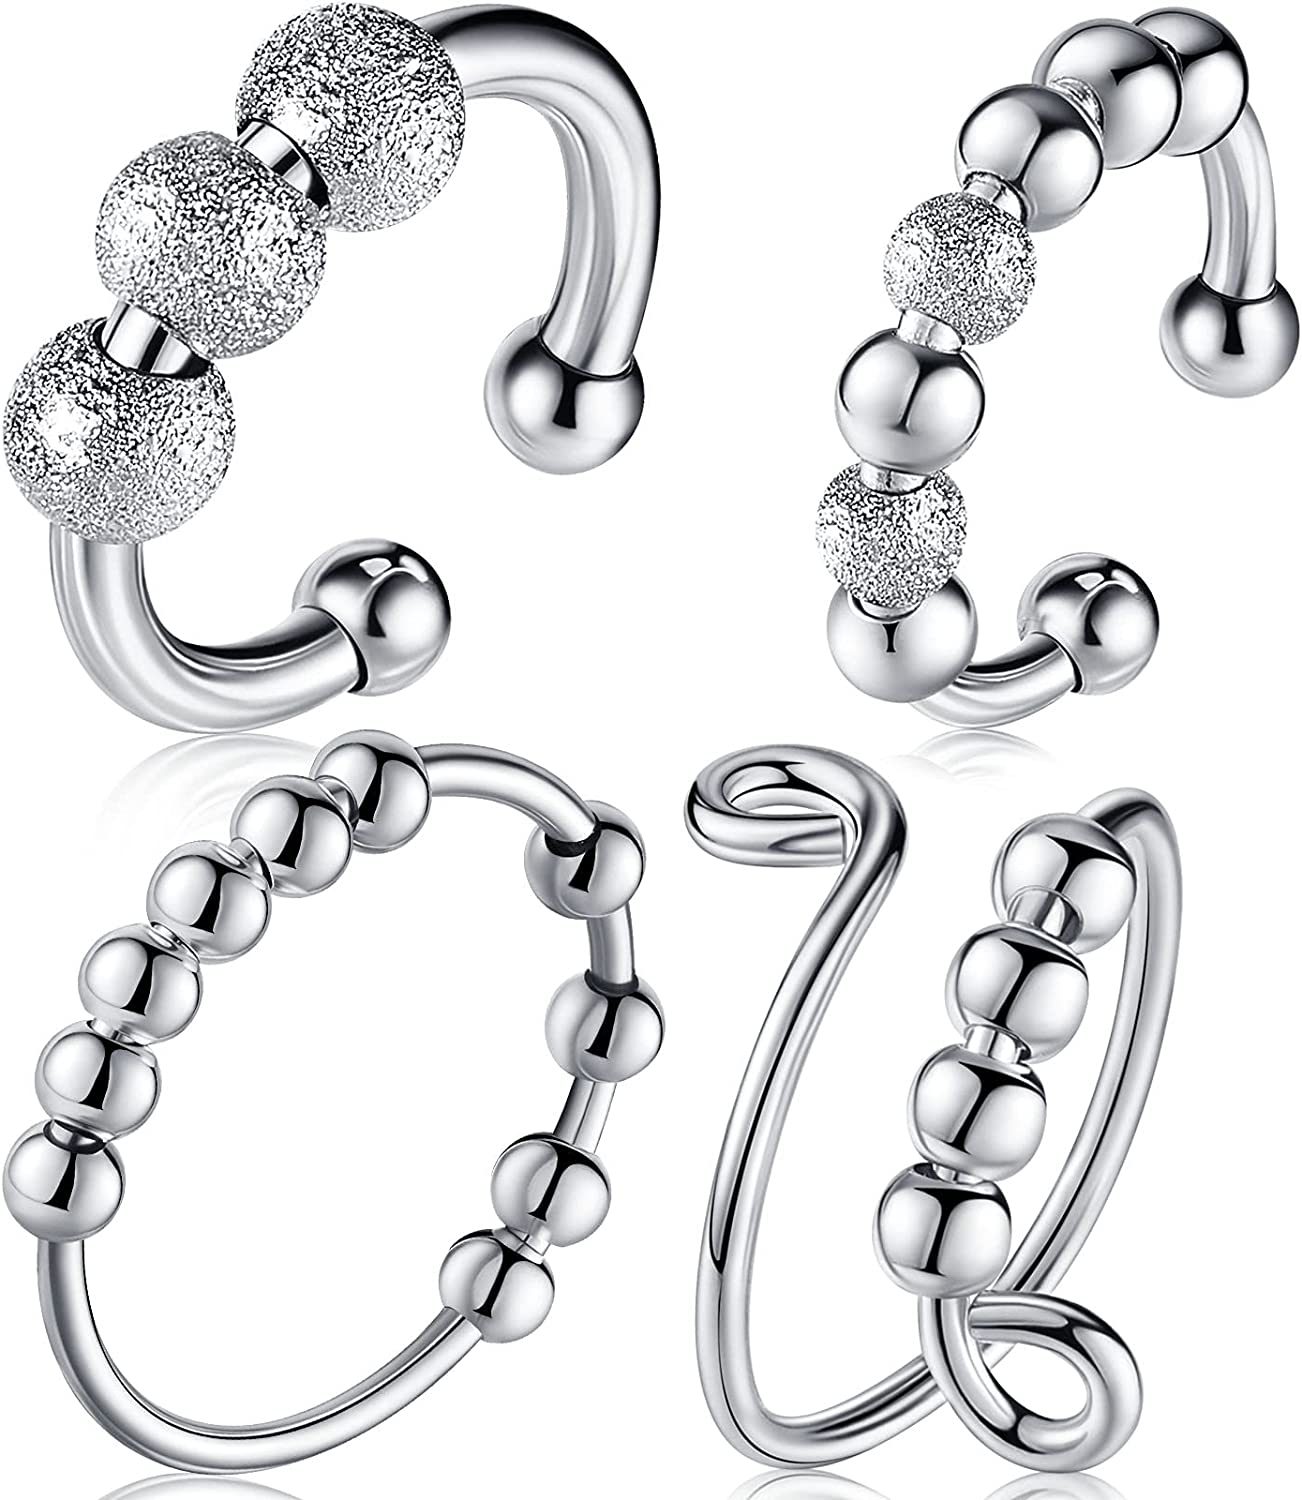 MTLEE 4 Pieces Anxiety Ring Spinner Rotatable Finger Ring with B